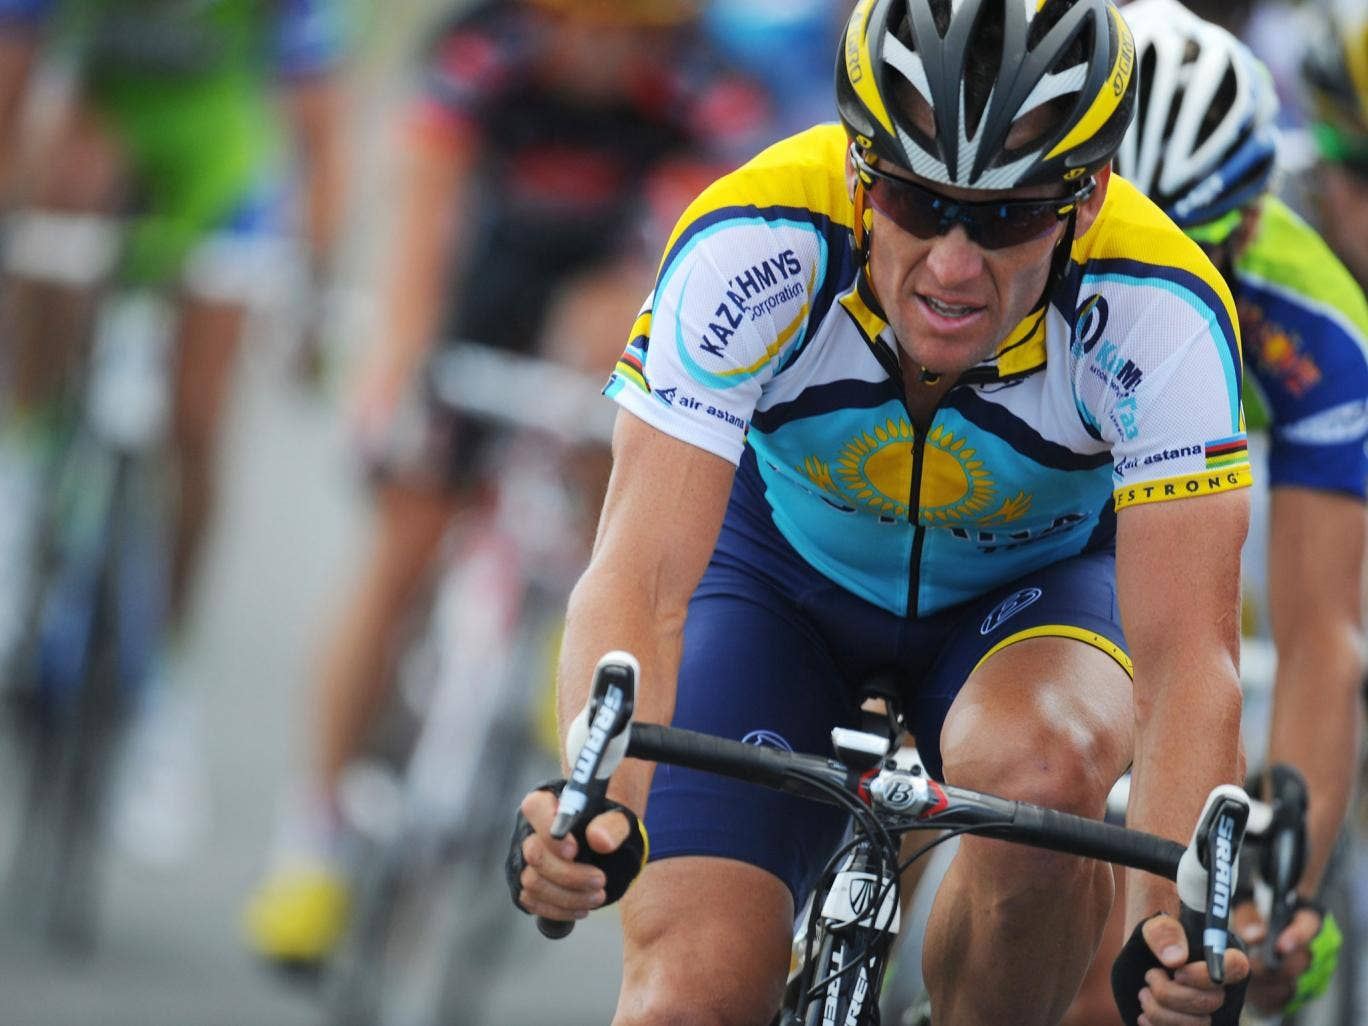 Lance Armstrong, pictured here on July 8, 2009, has announced a low-key return to the cycling circuit